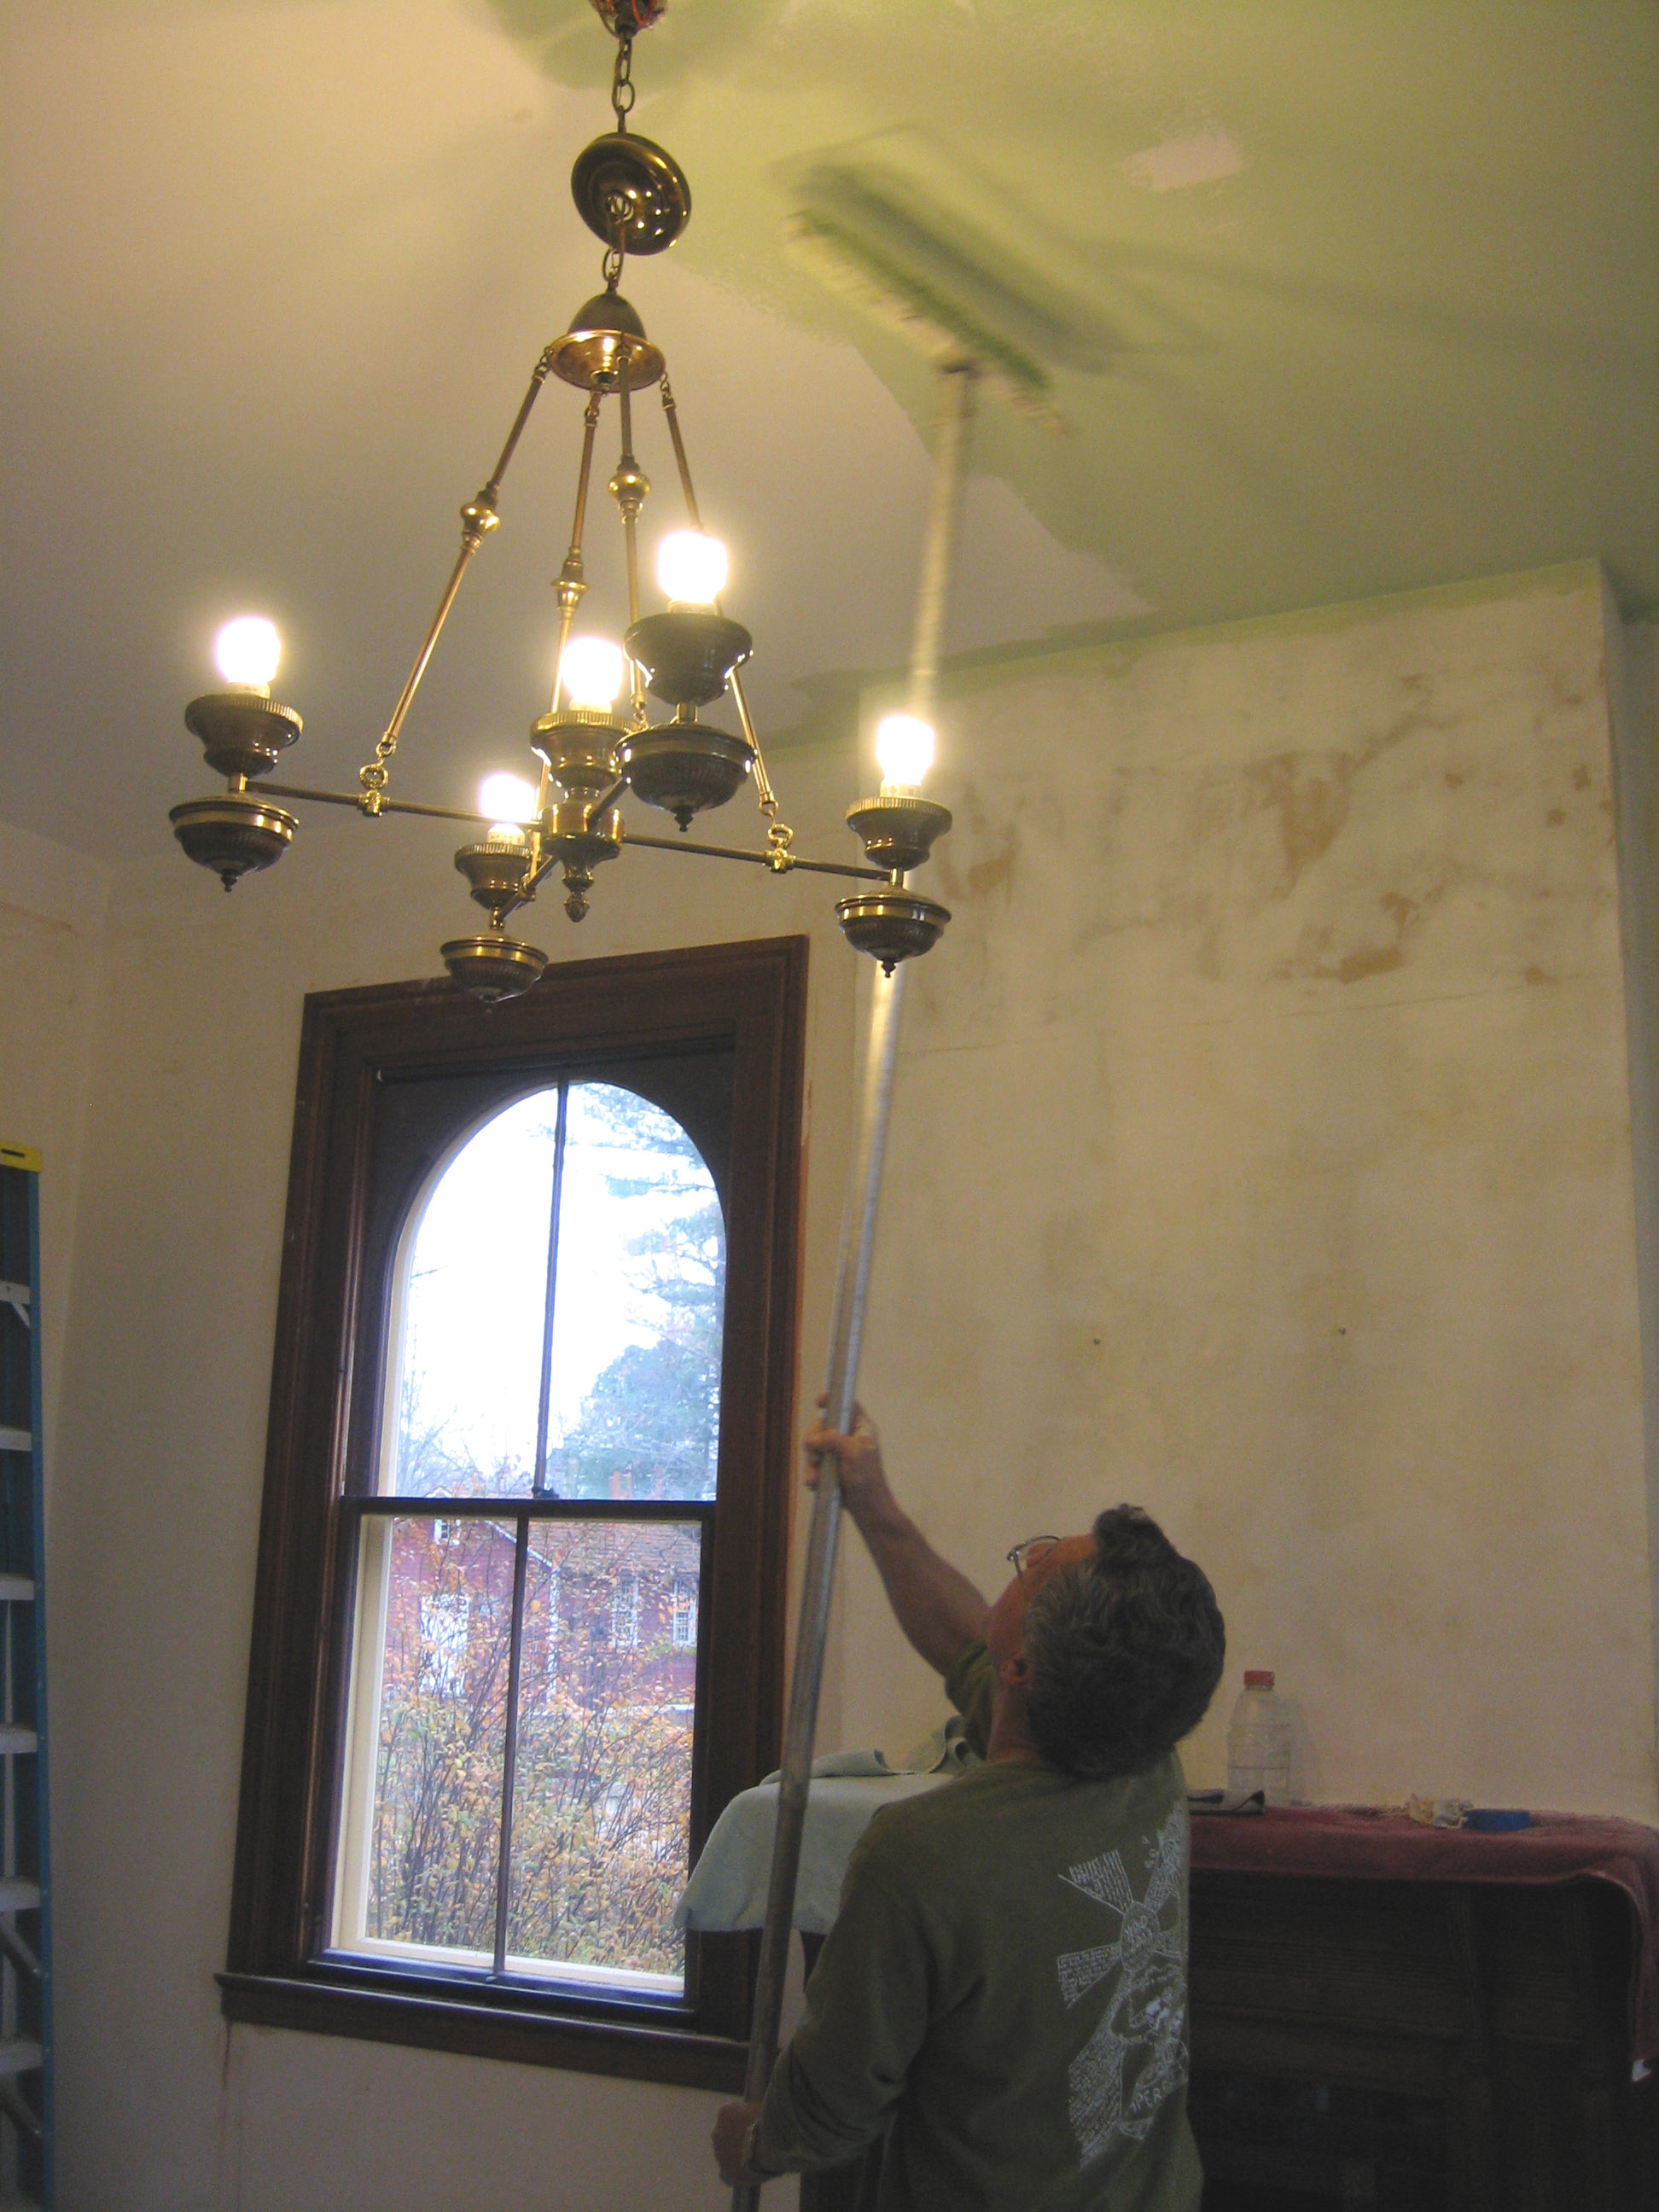 Volunteer Scott Broadwell painting the ceiling in the parlor.